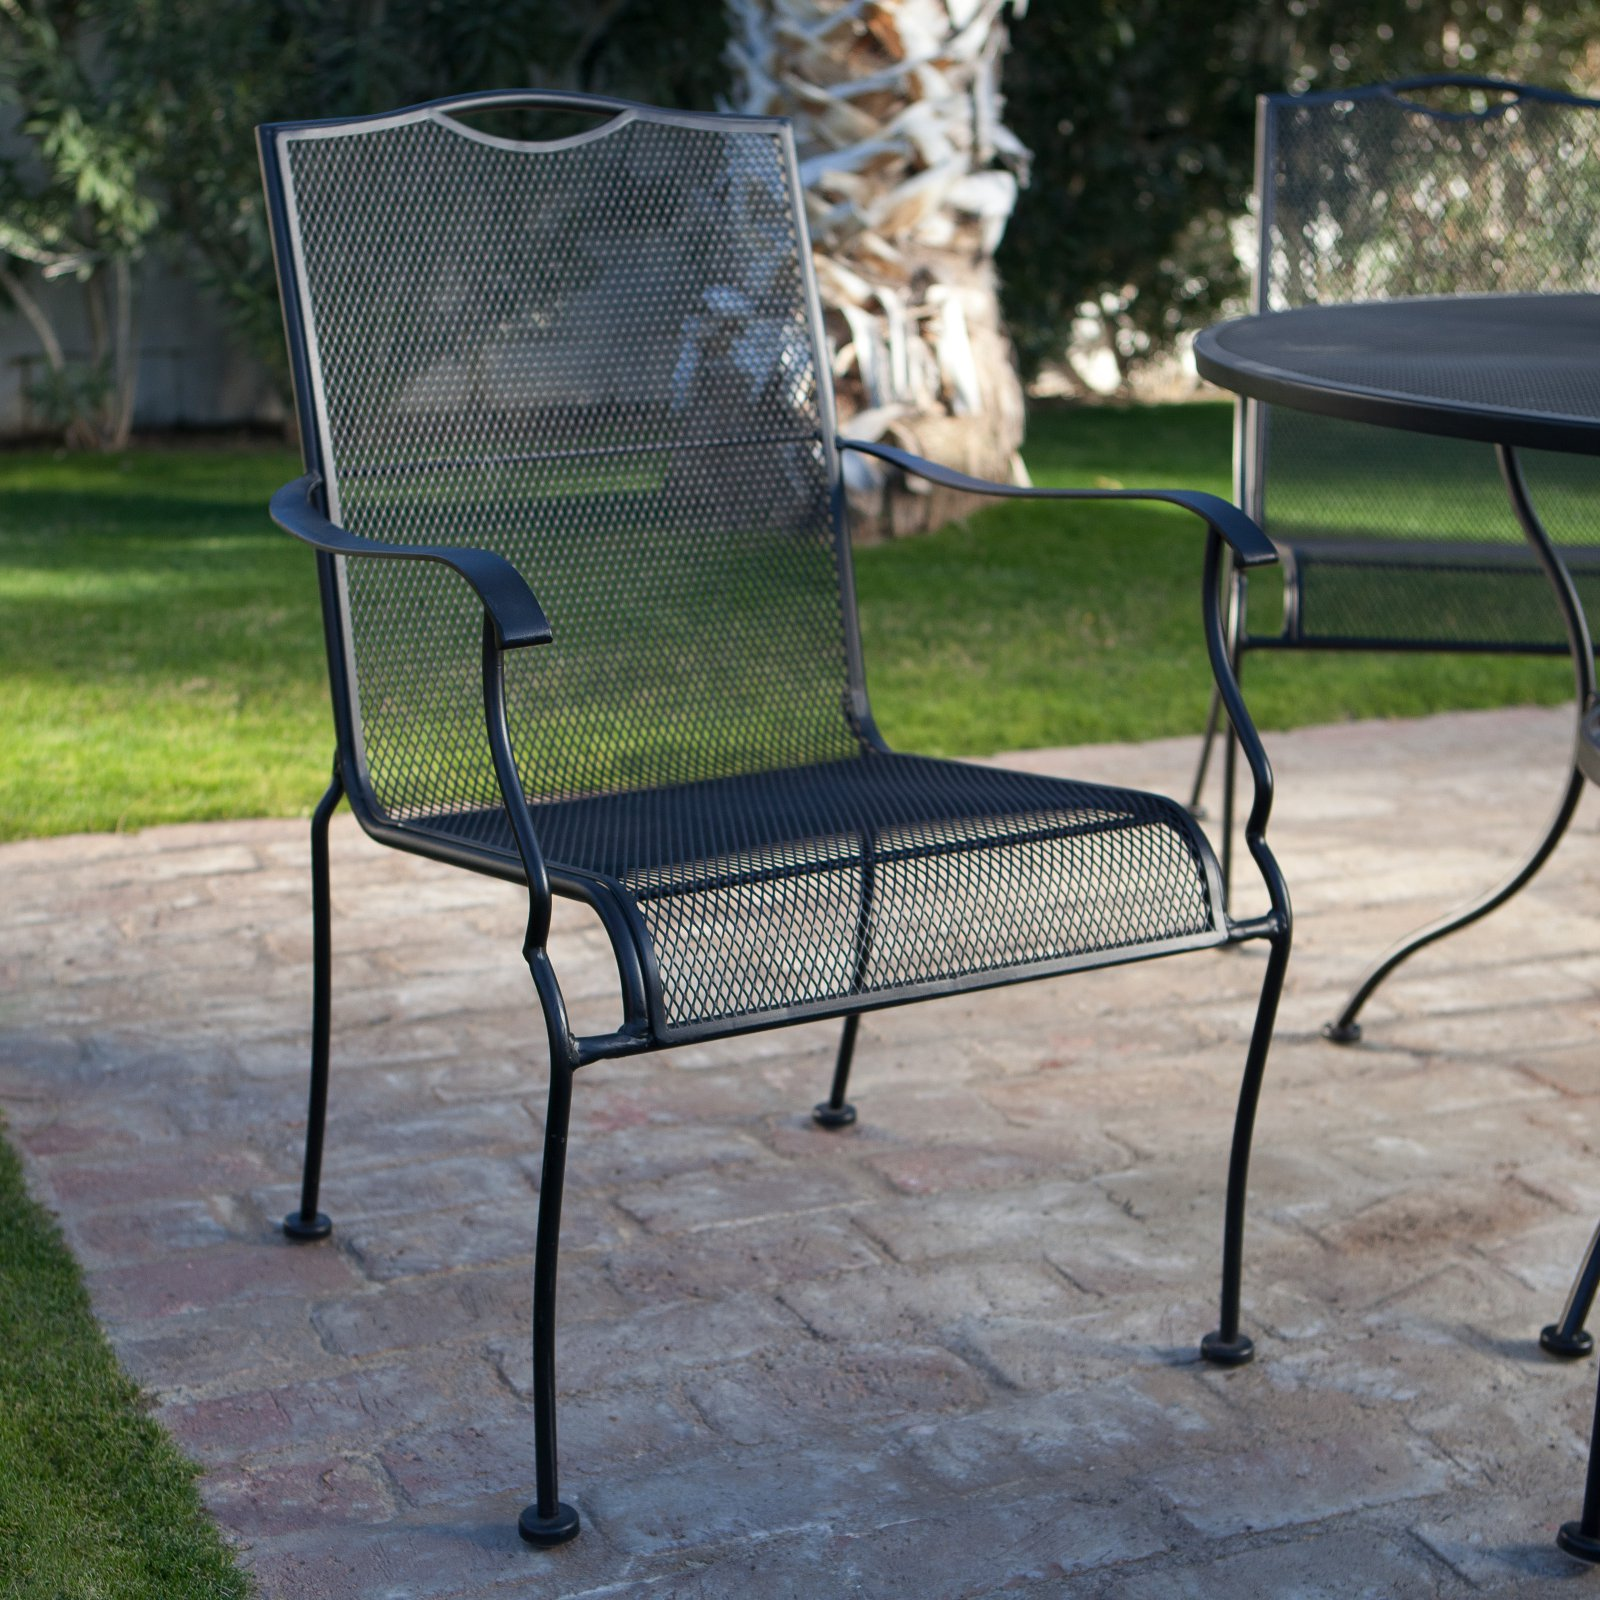 wrought iron dining chairs purchase online belham living stanton chair by woodard set of 4 textured black walmart com